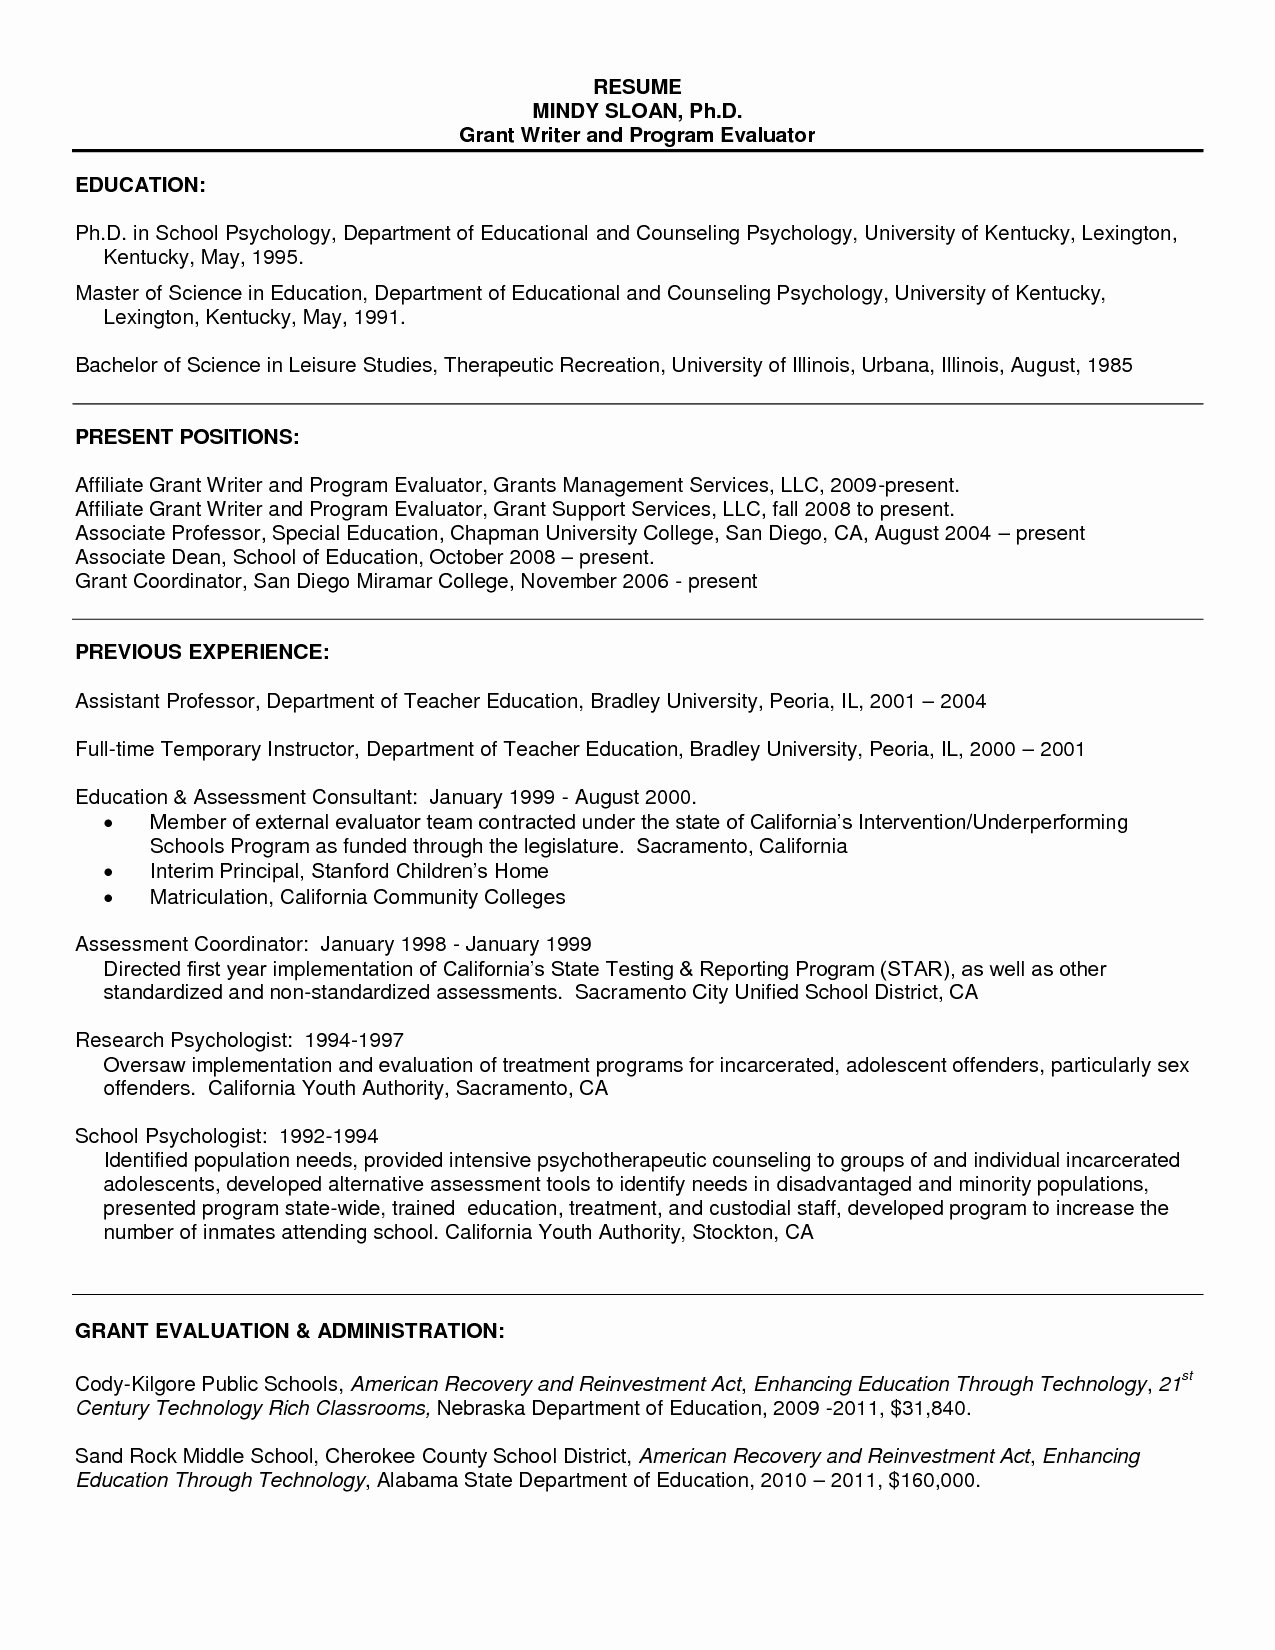 Sample Resume Psychology for Graduate School Resume